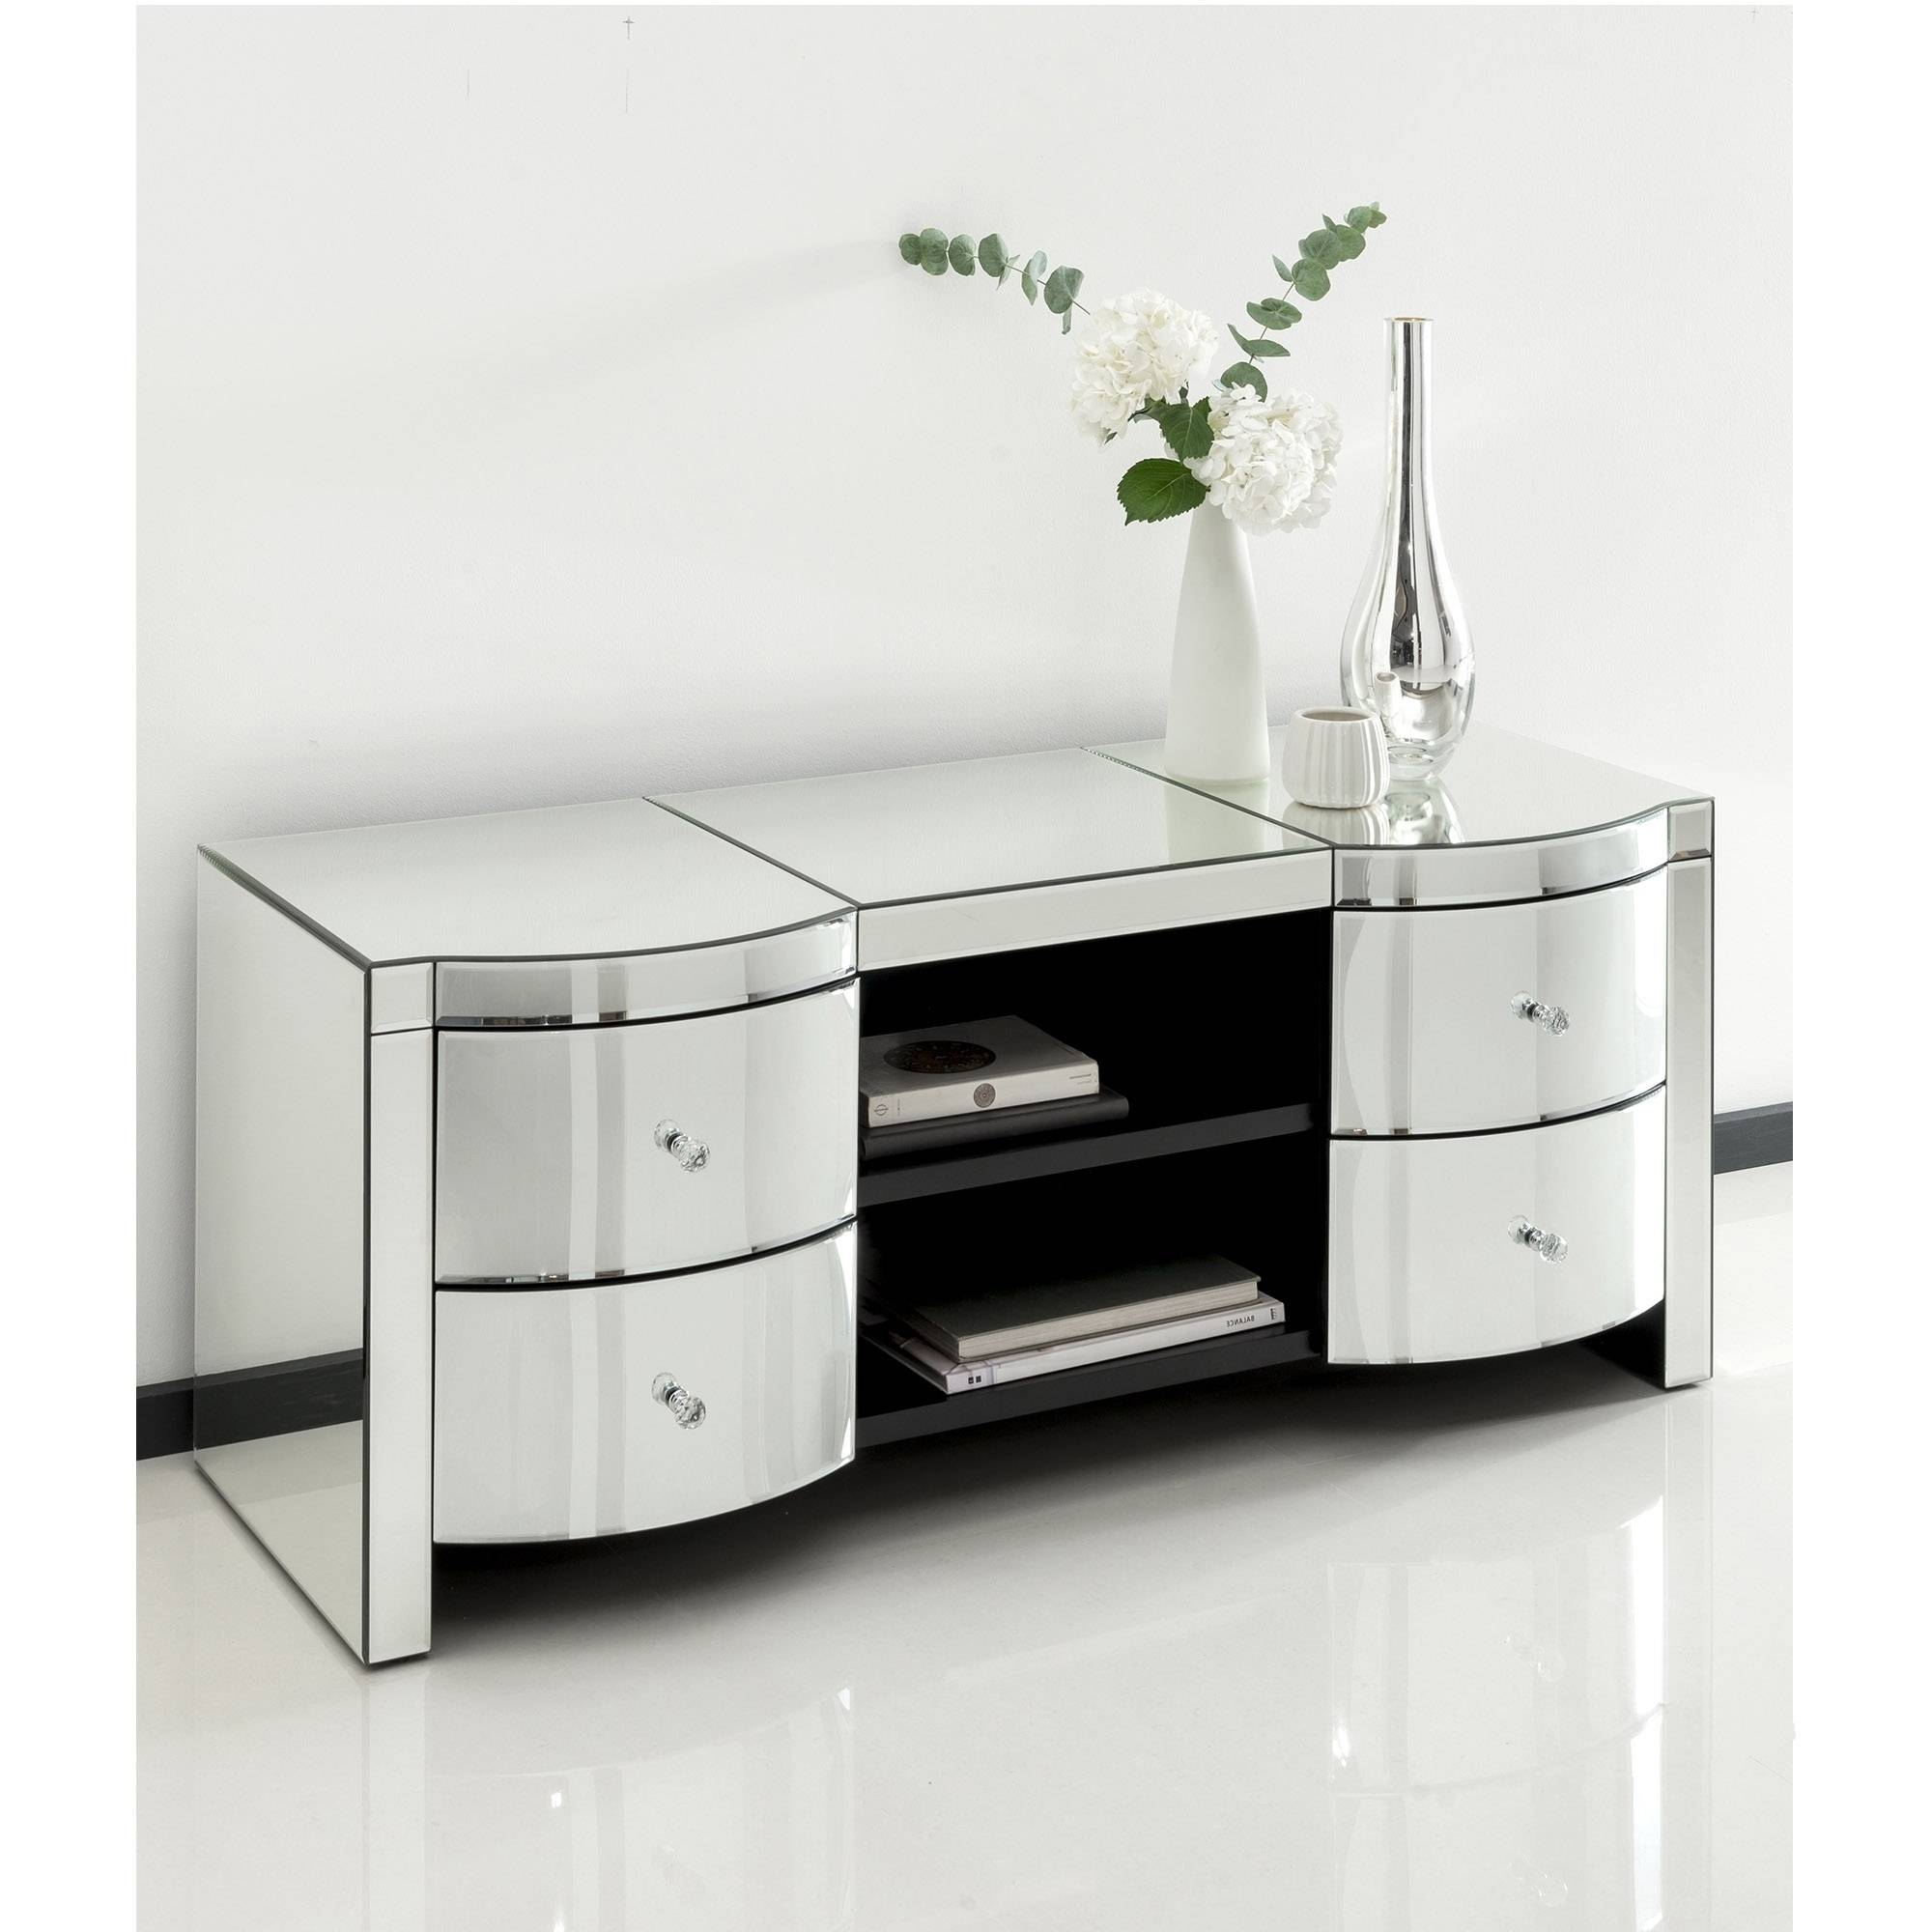 Romano Crystal Mirrored Tv Cabinet | Venetian Mirrored Furniture with Mirror Tv Cabinets (Image 10 of 15)